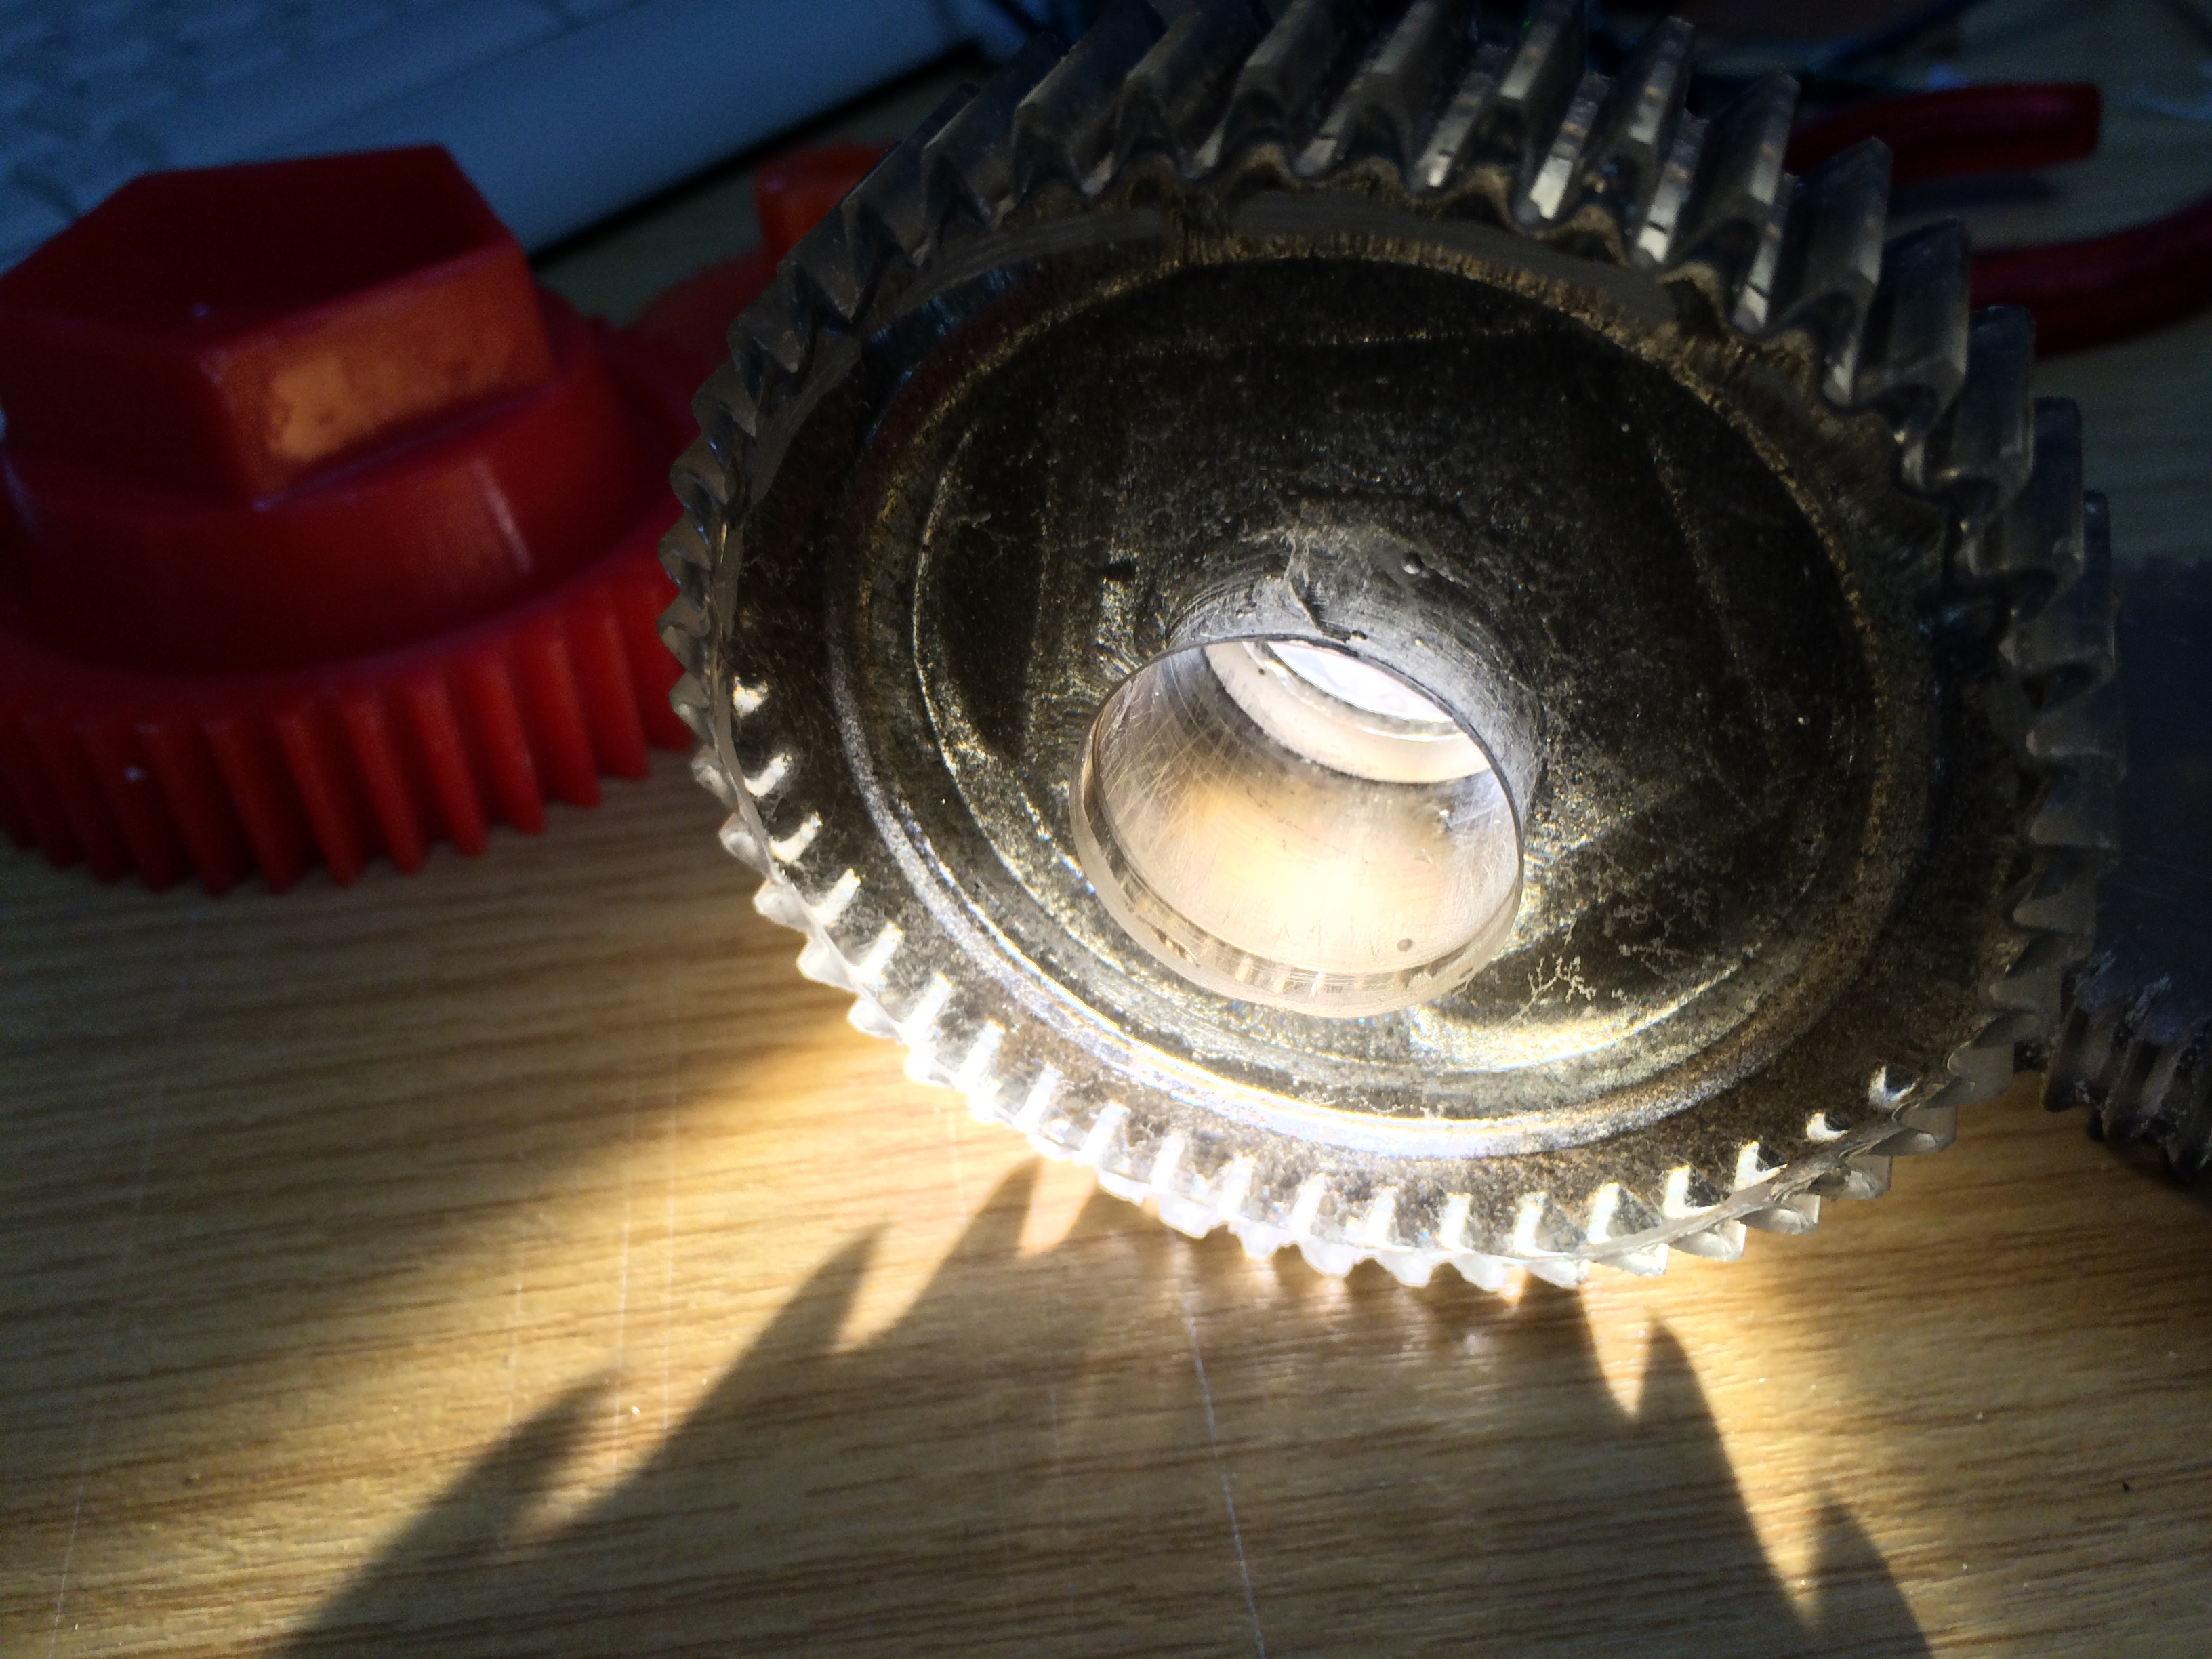 Picture of 5. Pulling Out the Gears, Cleaning, Polishing